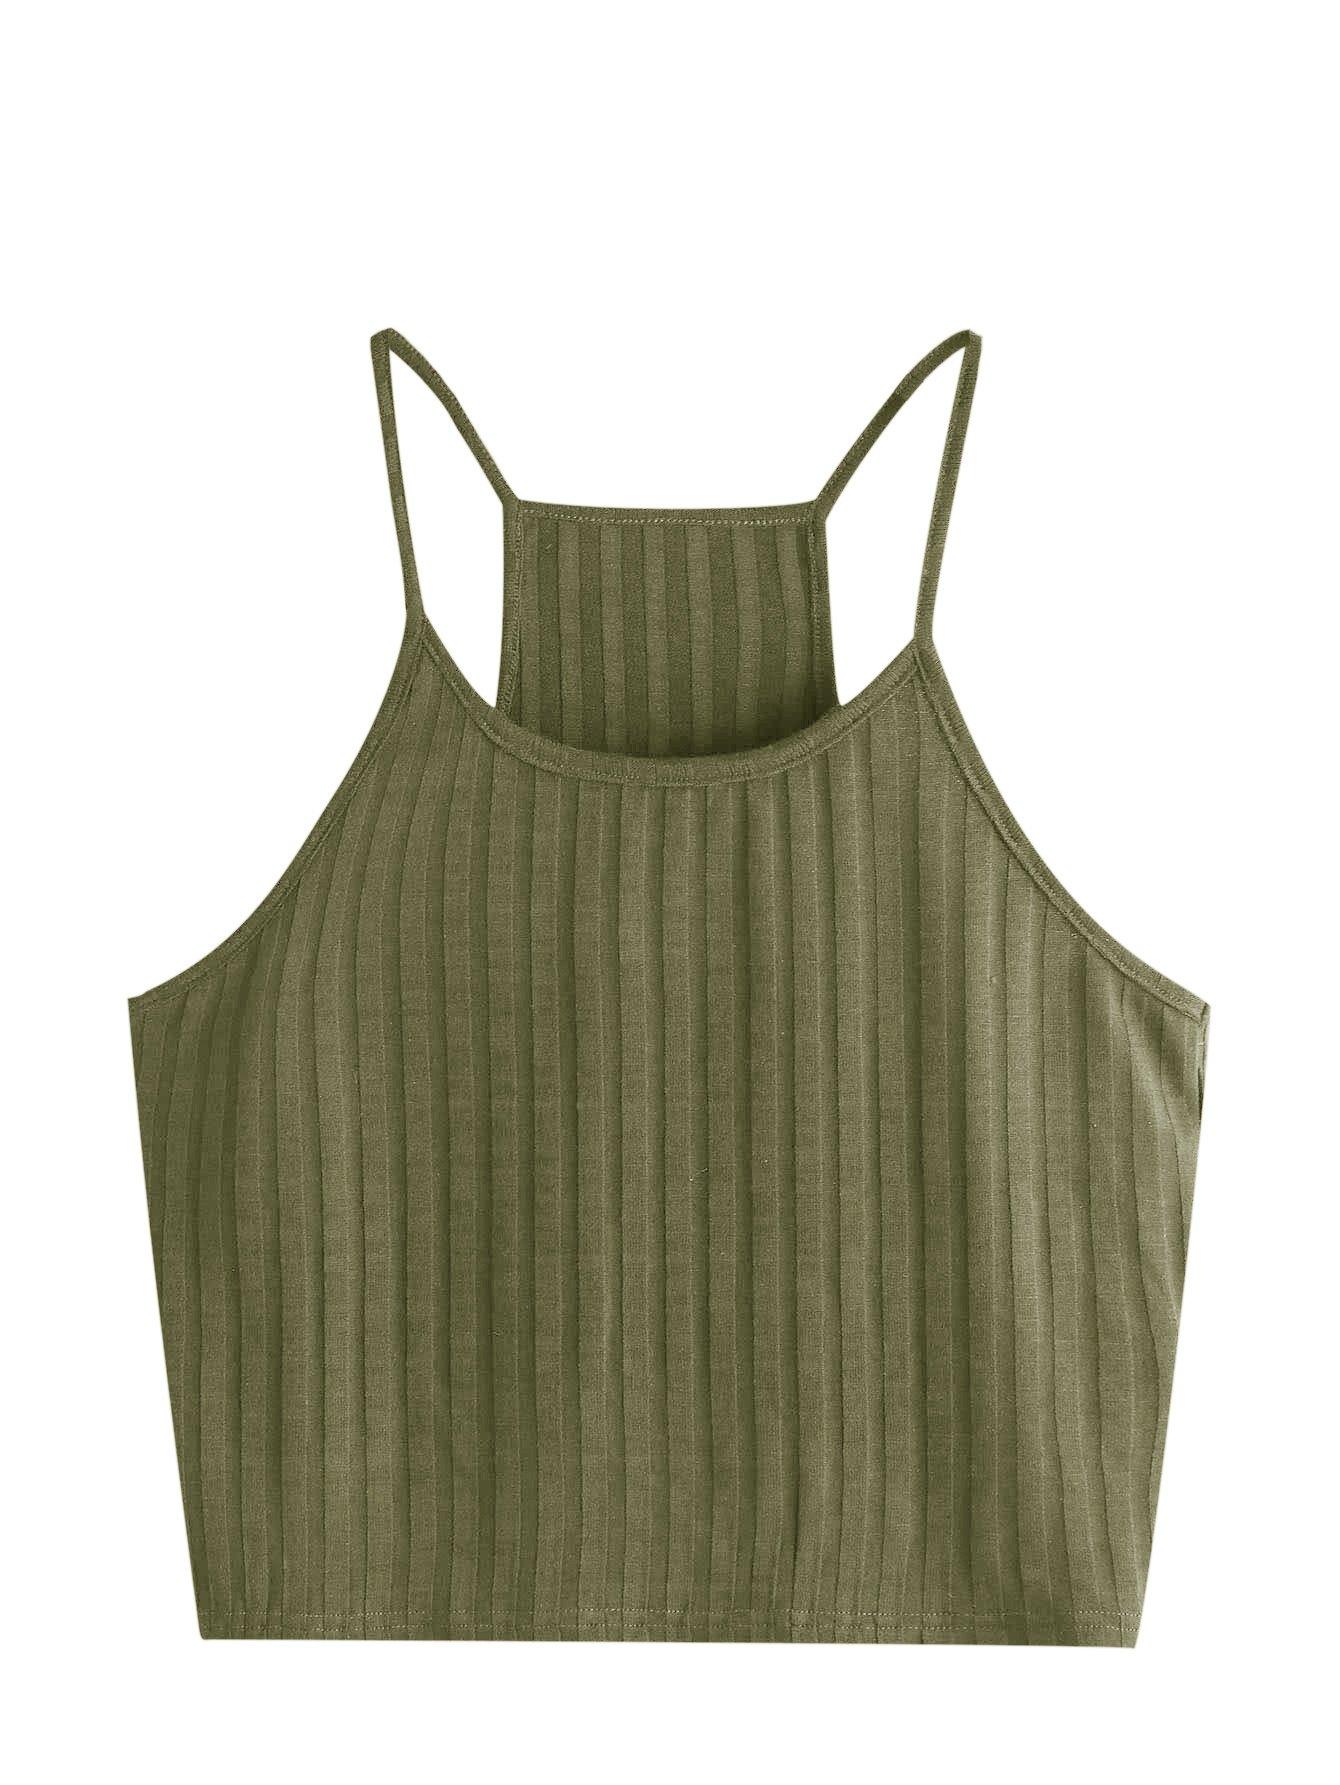 SheIn Women's Summer Basic Sexy Strappy Sleeveless Racerback Crop Top Small Army Green